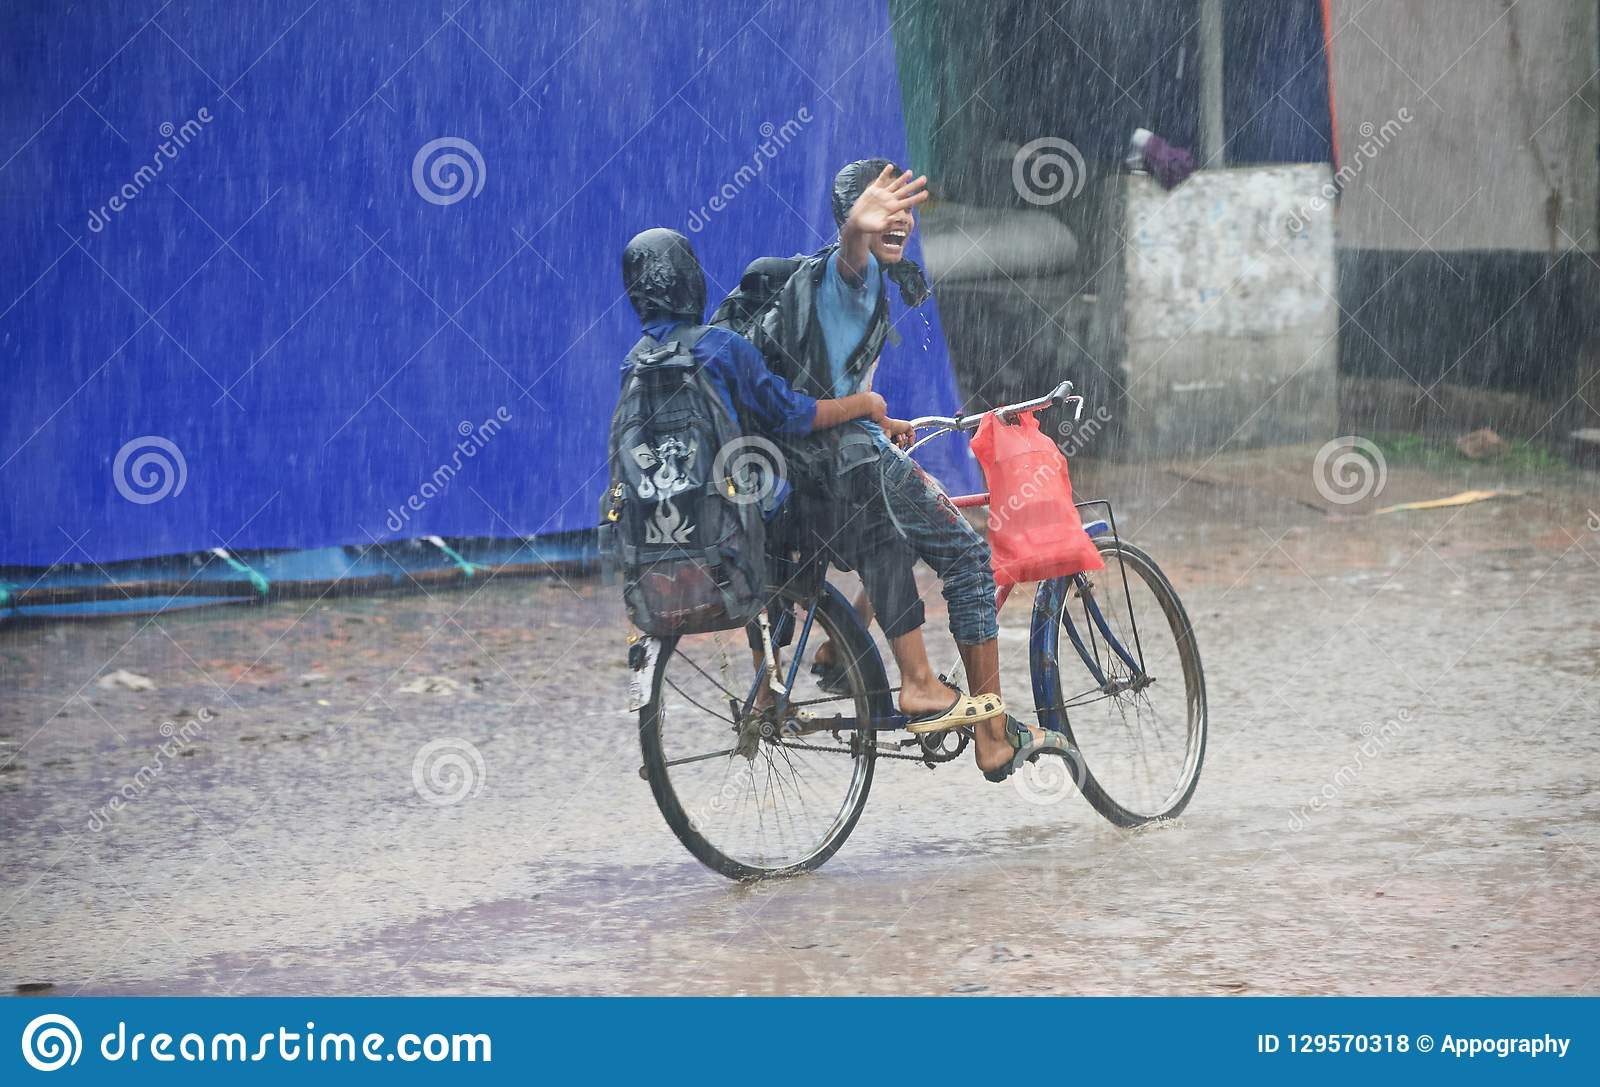 Two young boys riding a bicycle in the rain